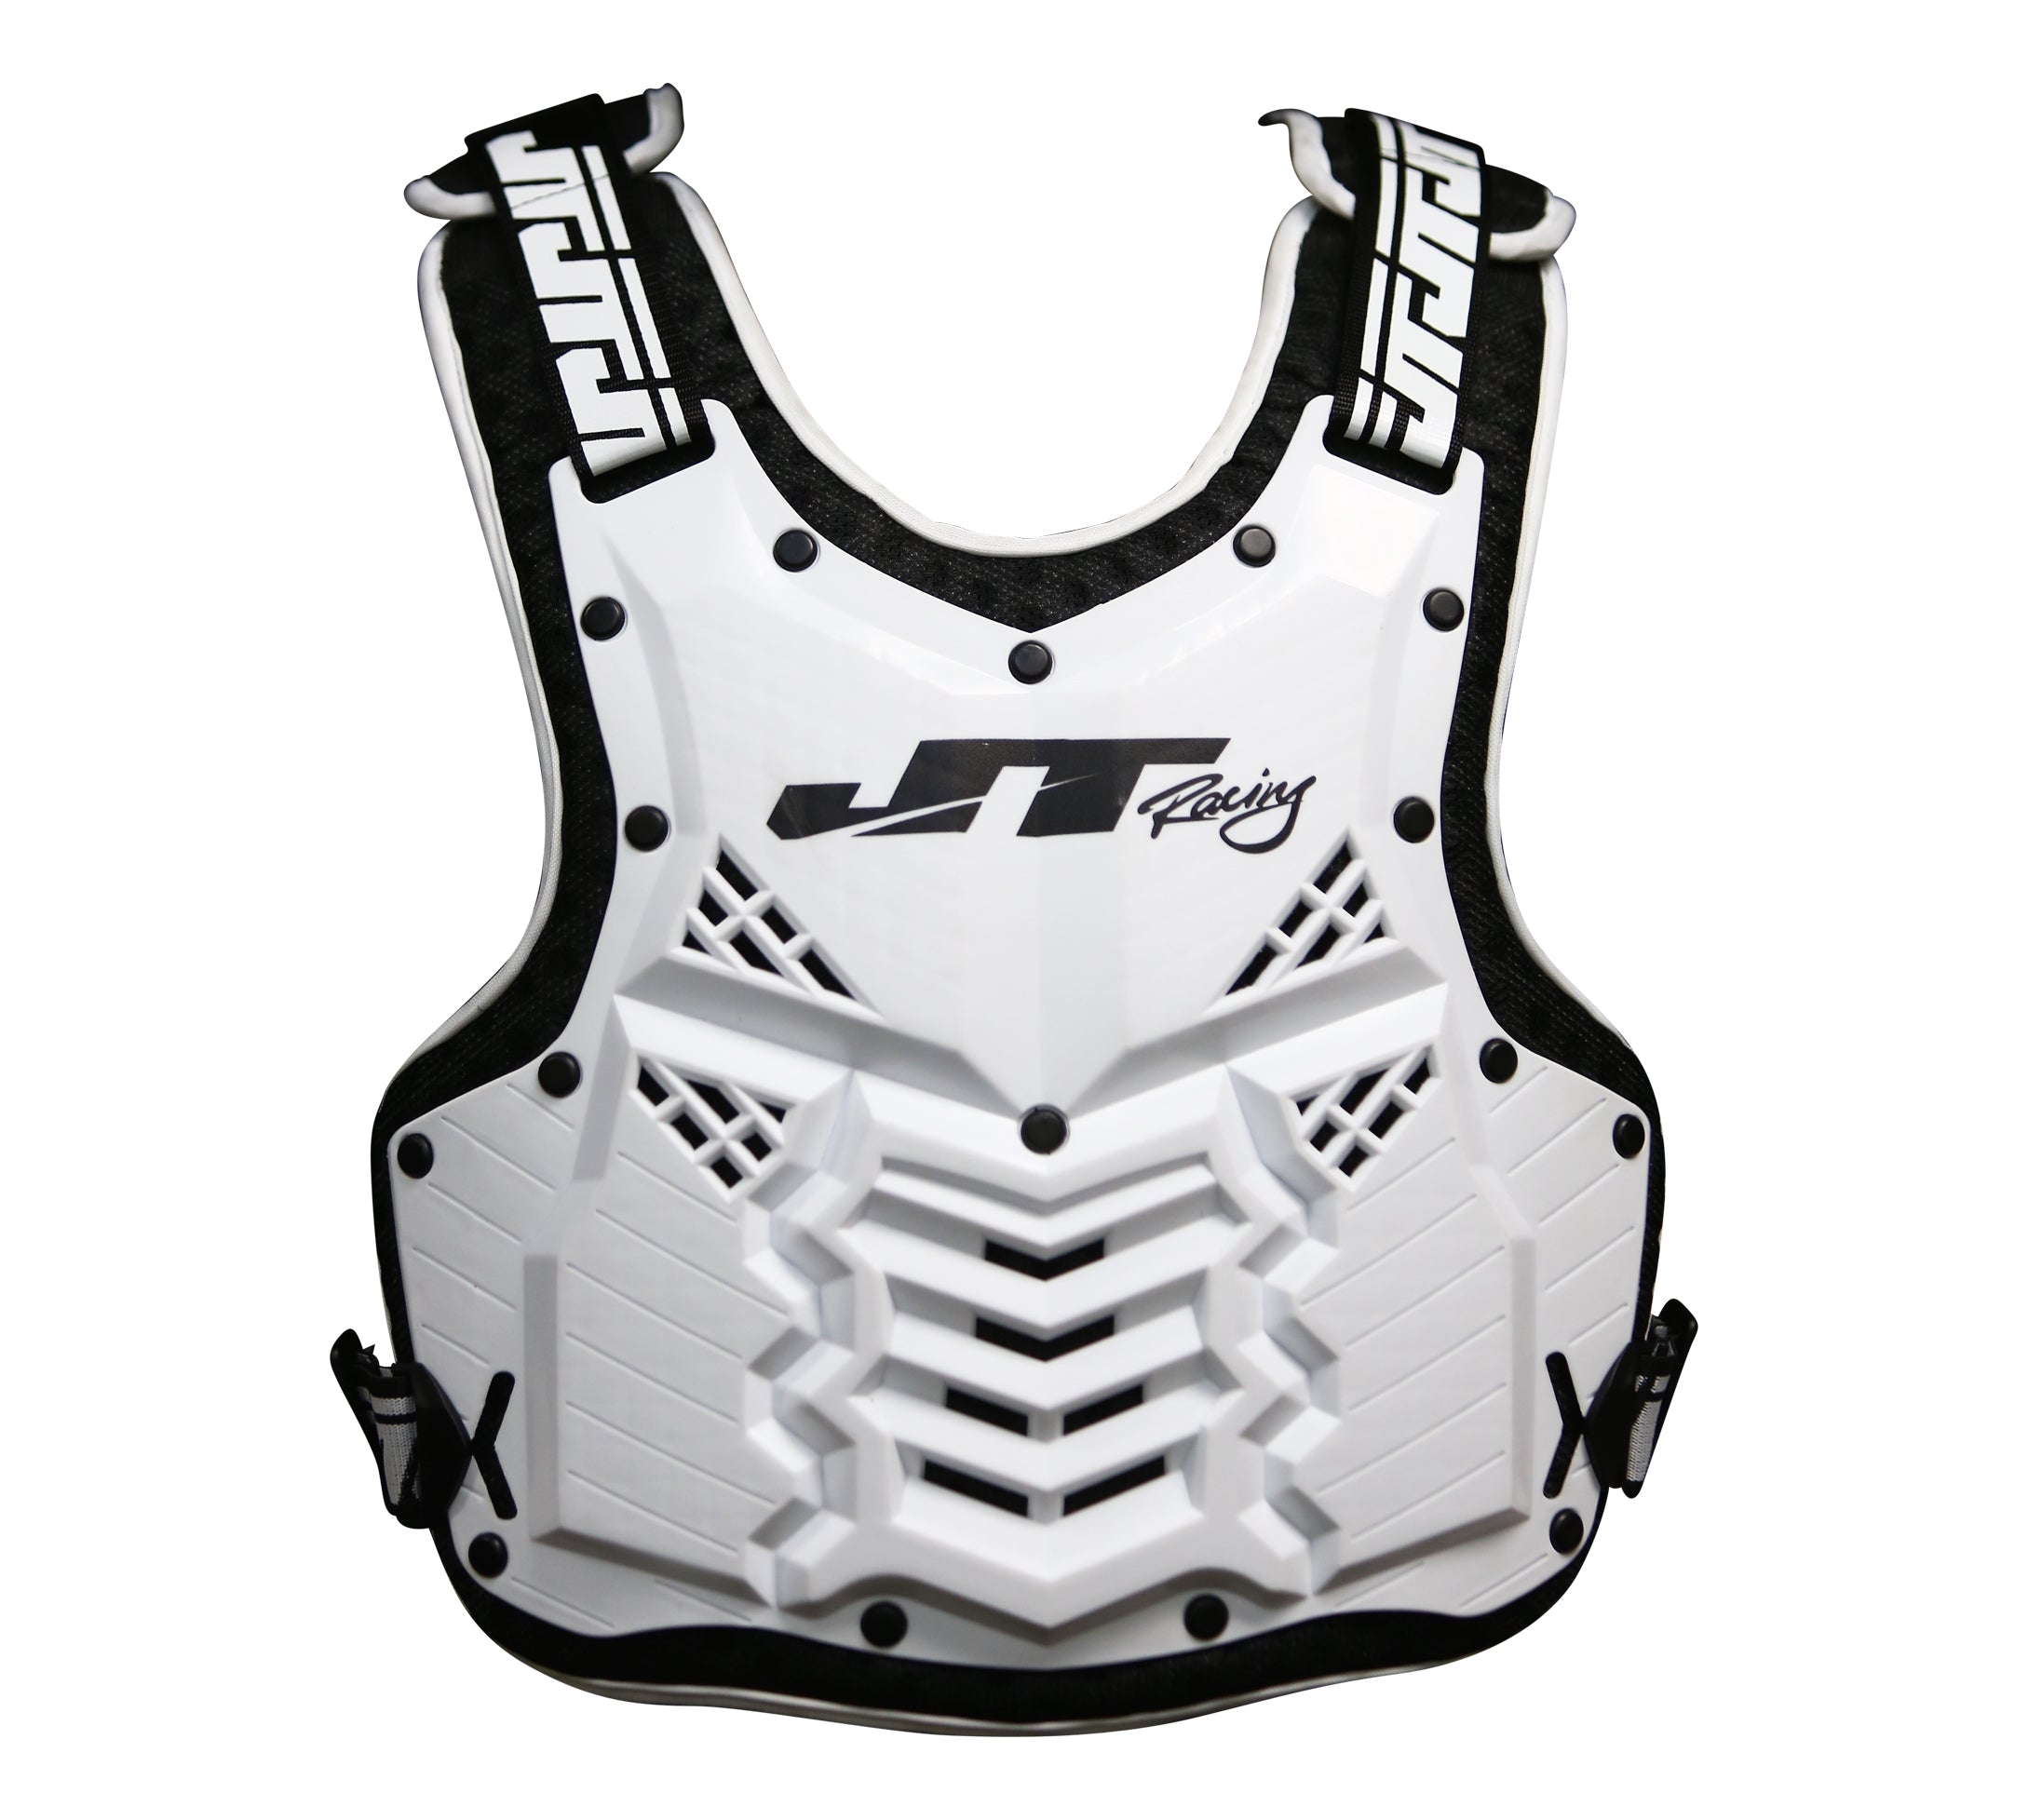 JT Racing-V2K Chest & Back Protector, Black/White